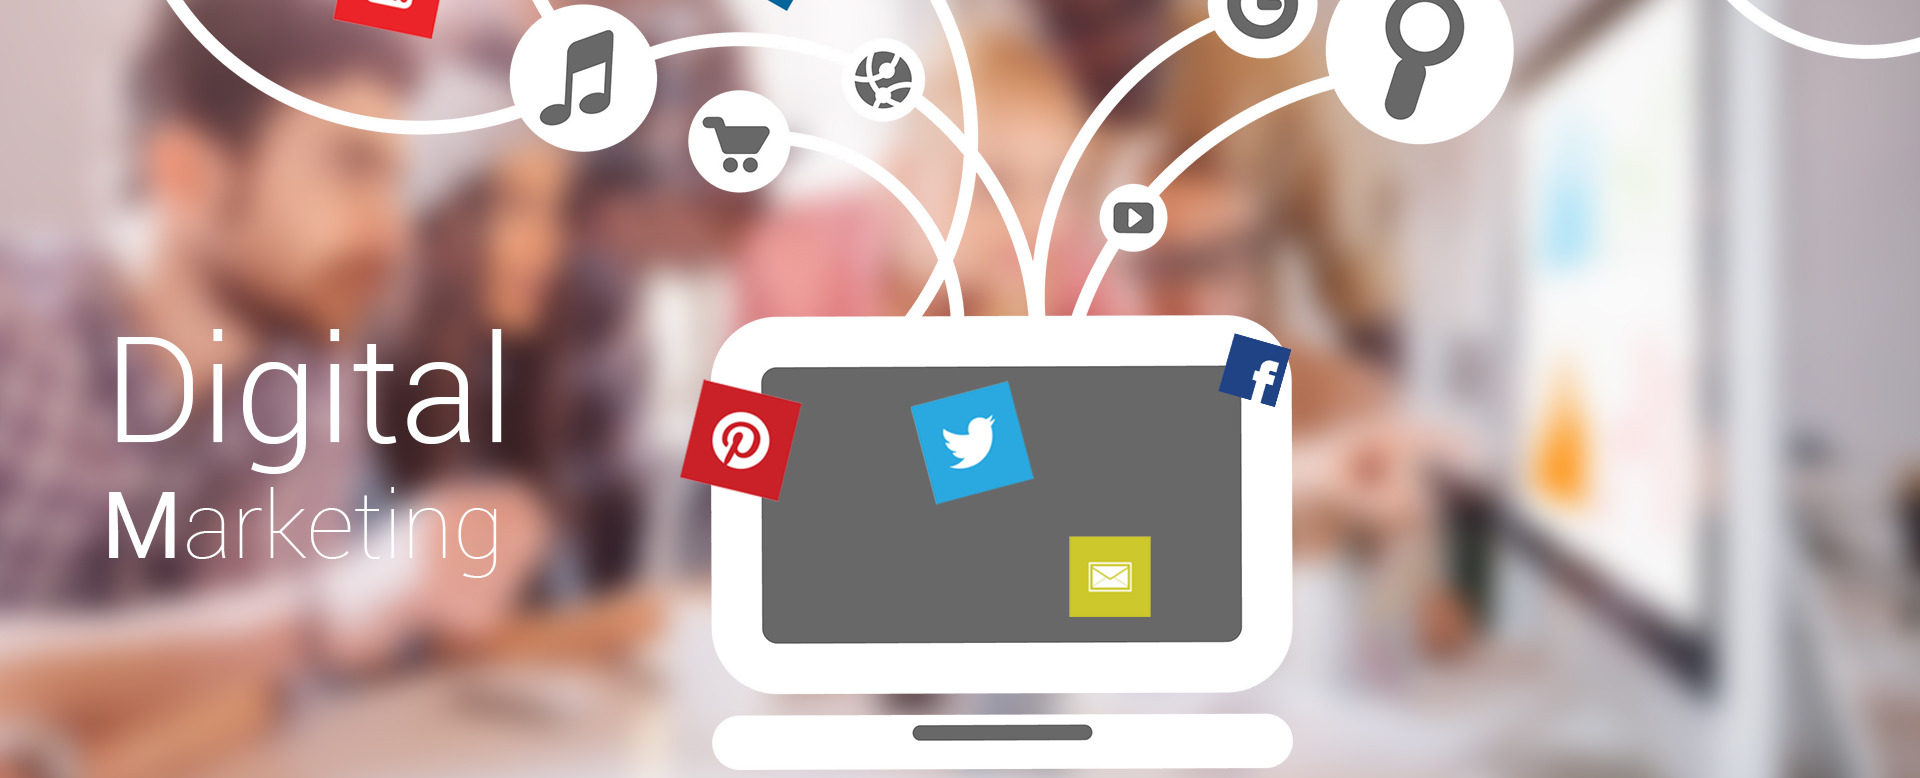 Marketing en redes sociales y blogs